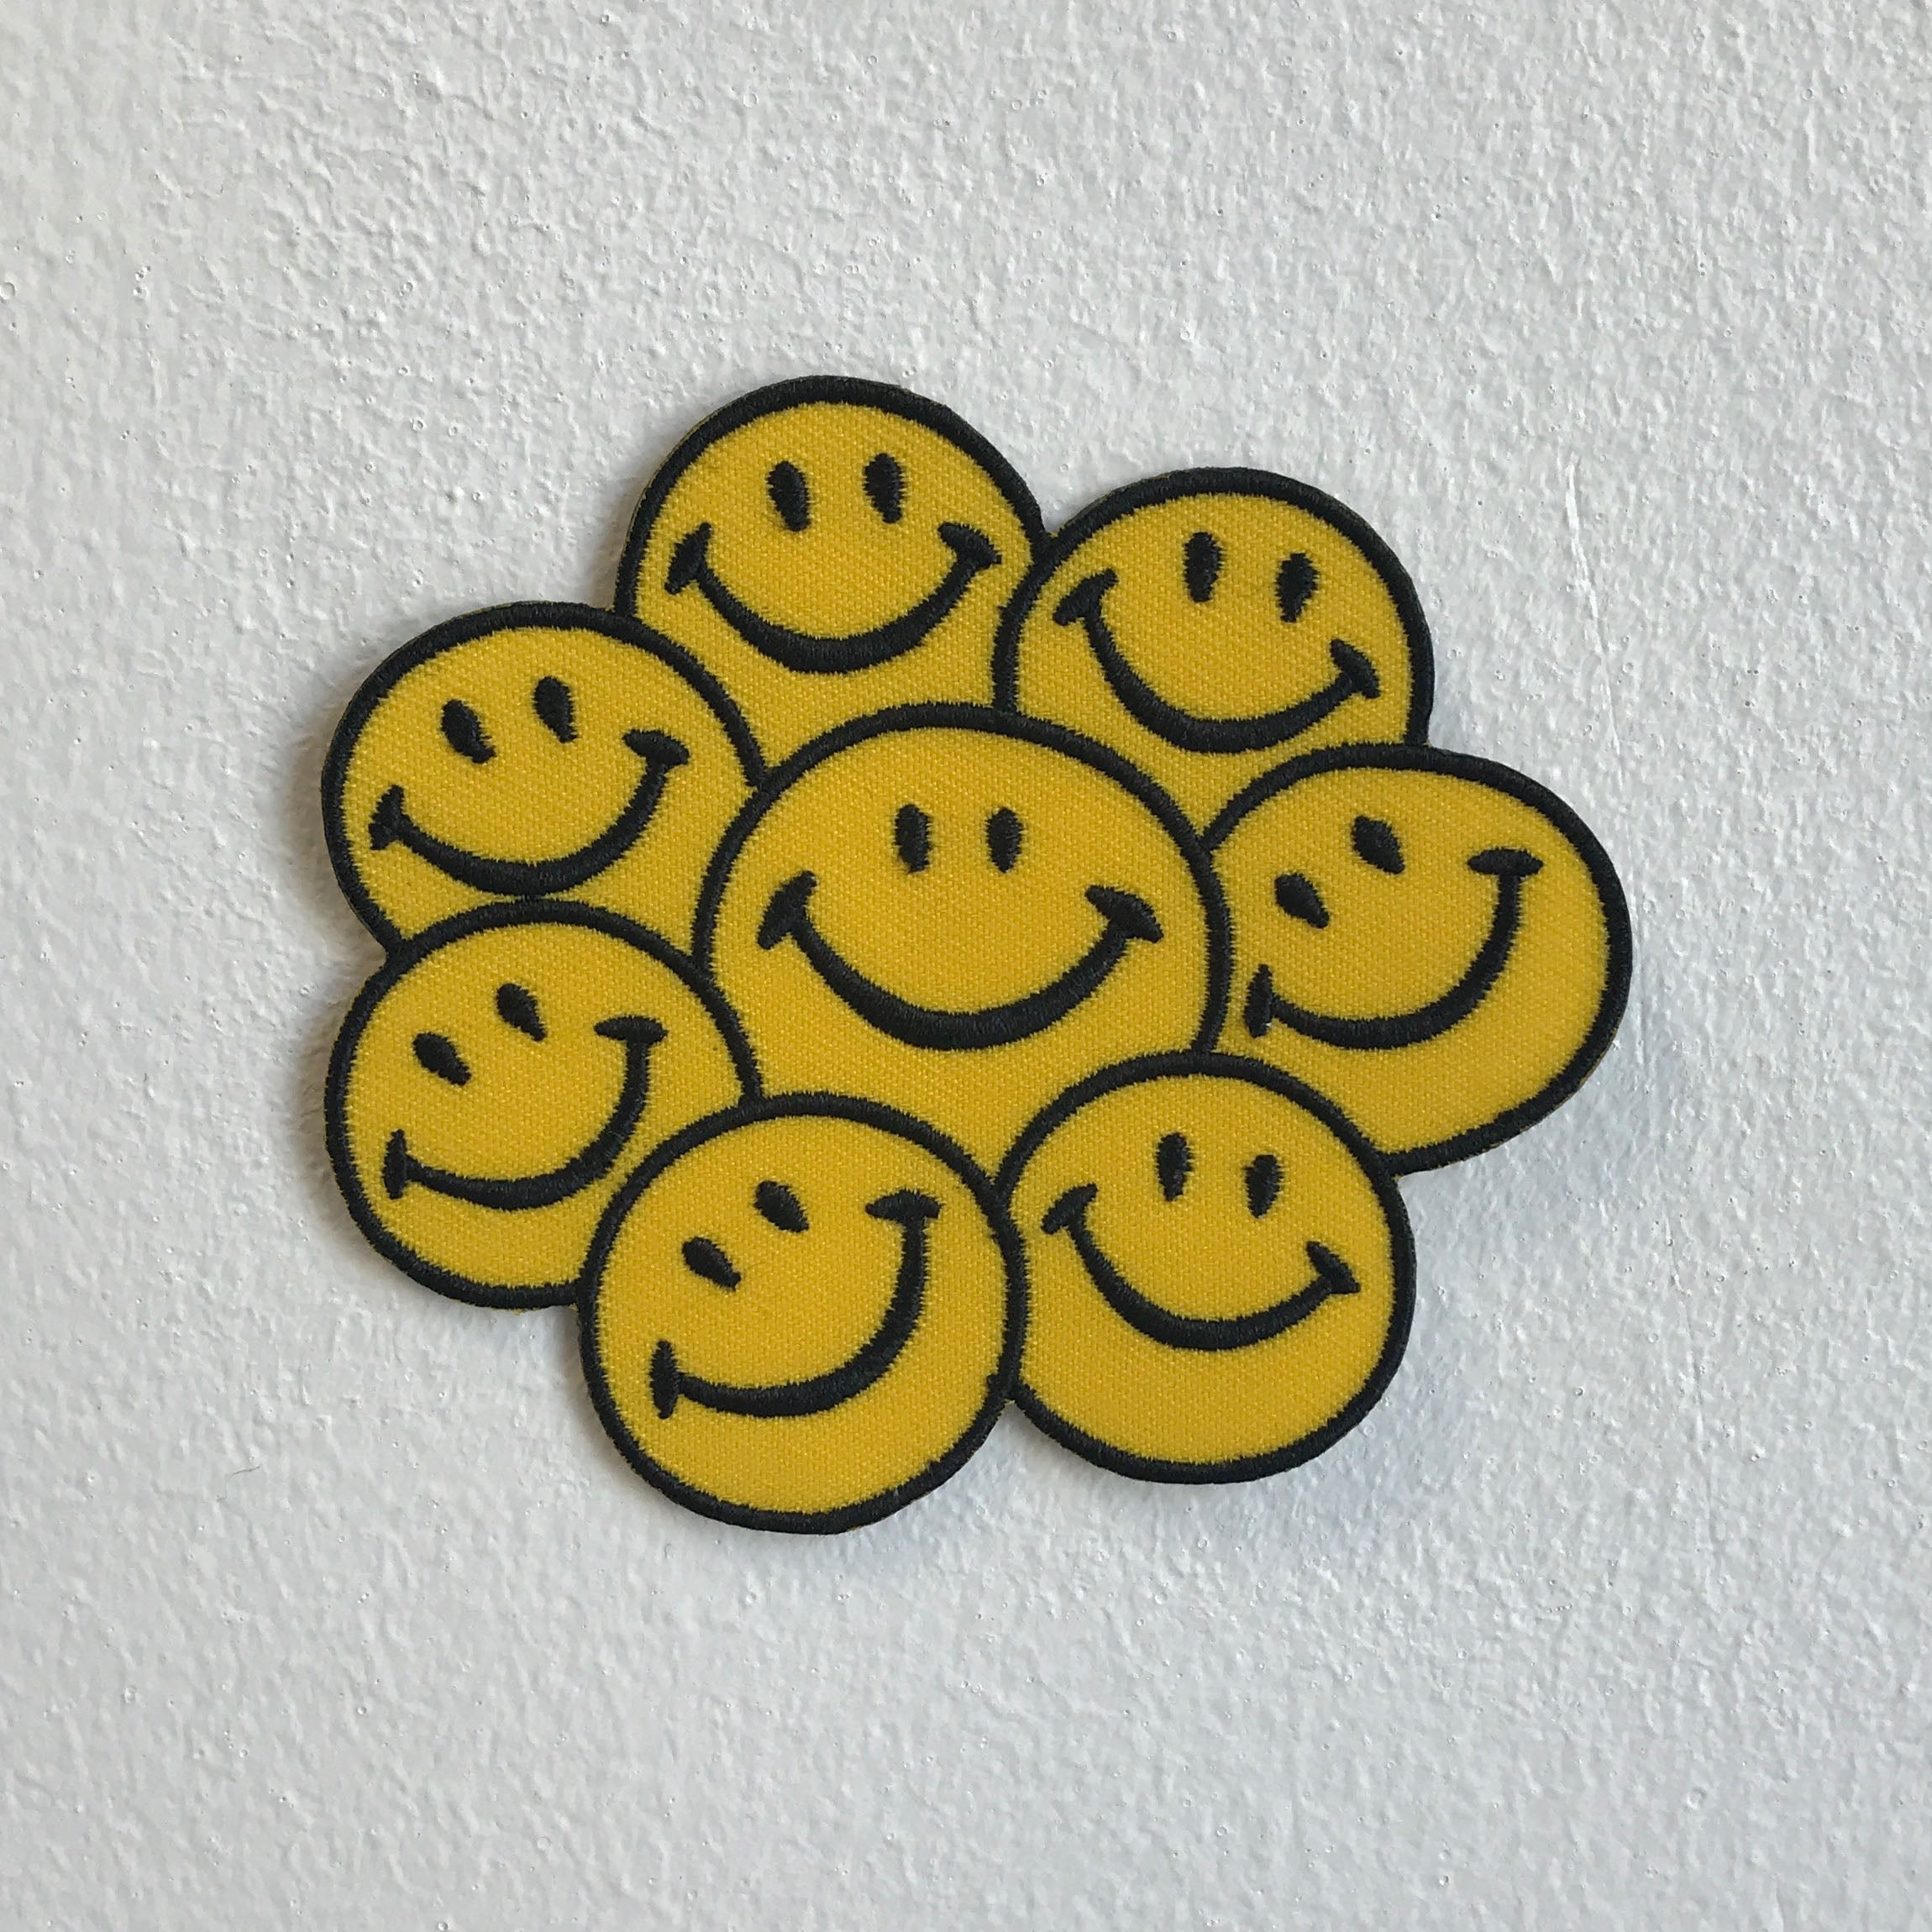 Happy Face Smiley Rainbow Emoji Iron Sew on Embroidered Patch